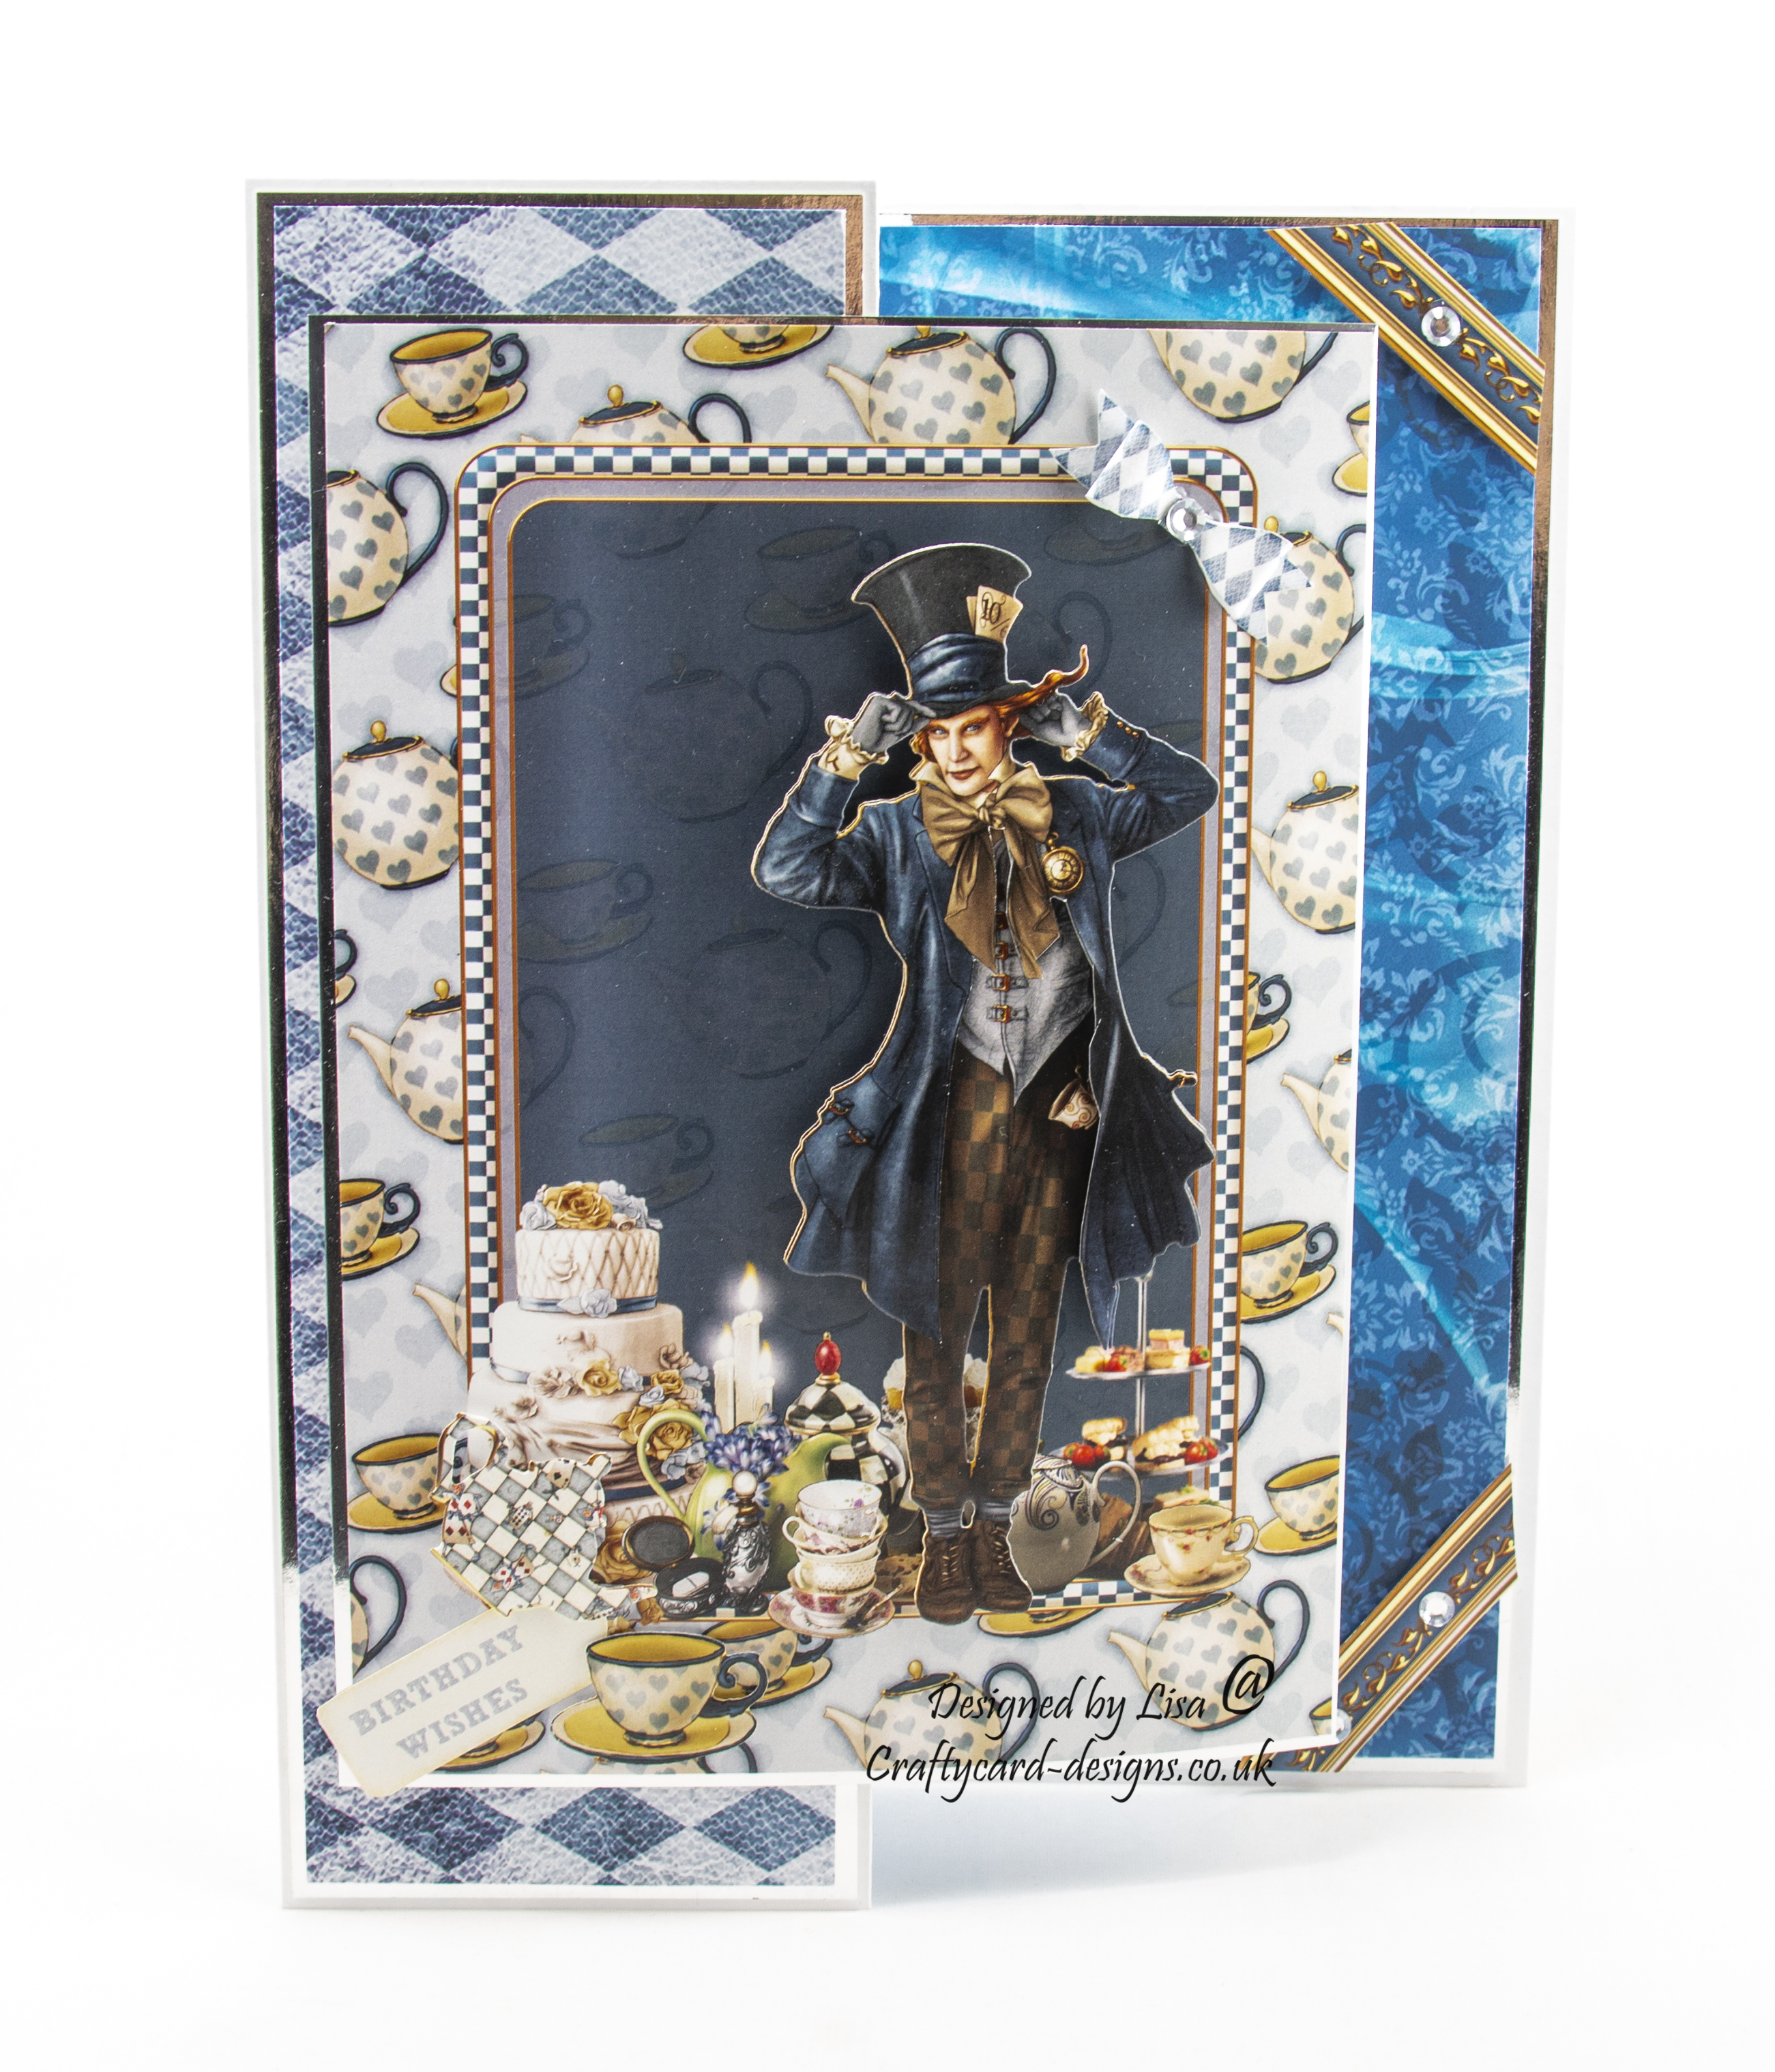 Handmade card using Journey To Wonderland match it cd-rom and Journey To Wonderland Mad Hatter match it pad